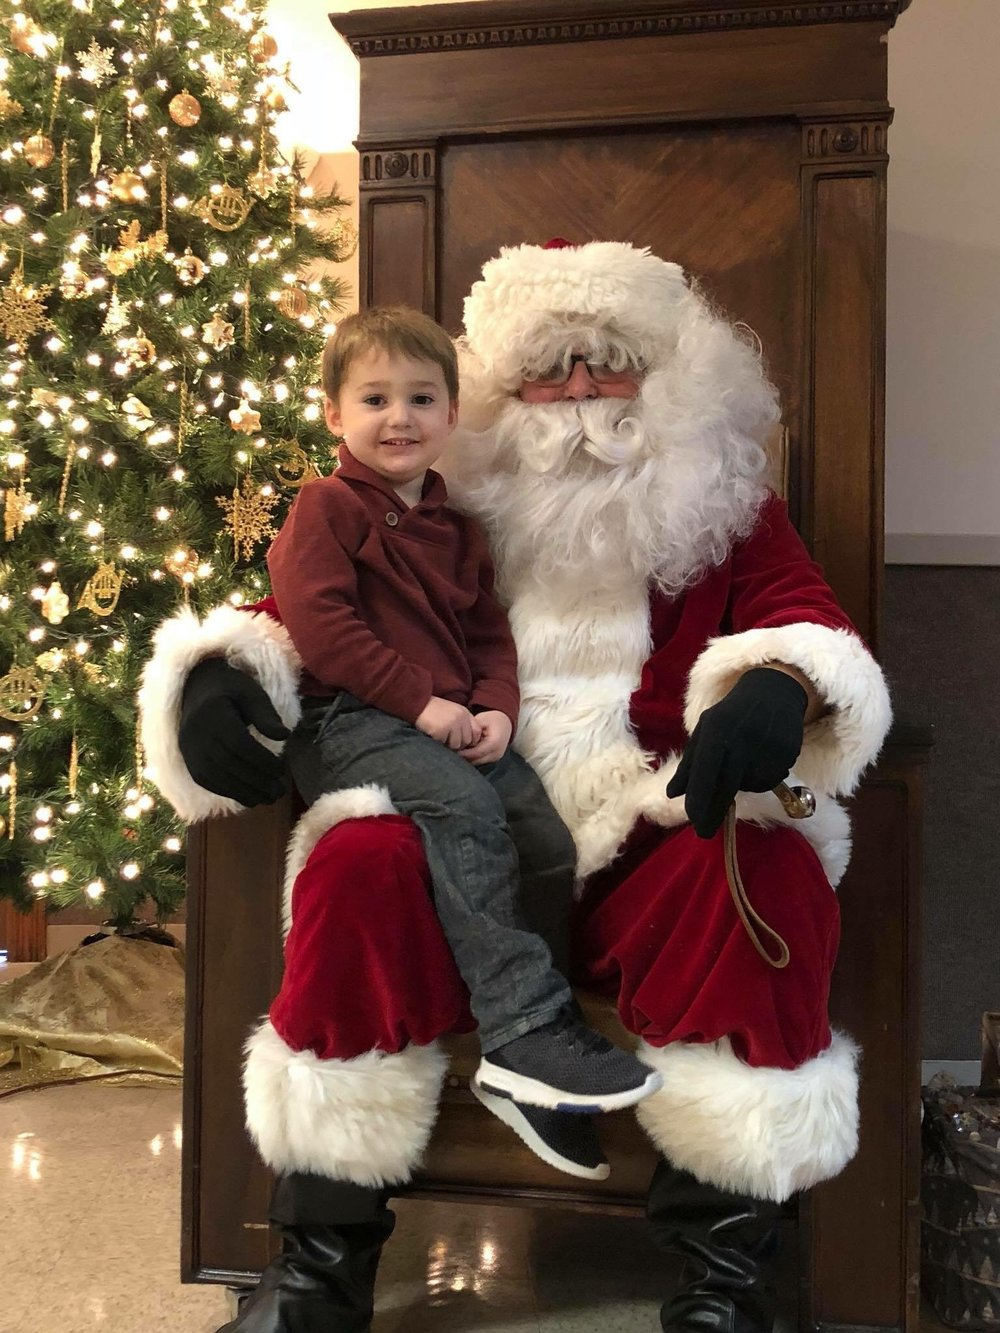 Pictured visiting with Santa is Jack, the grandson of Dave and Patti Keipper